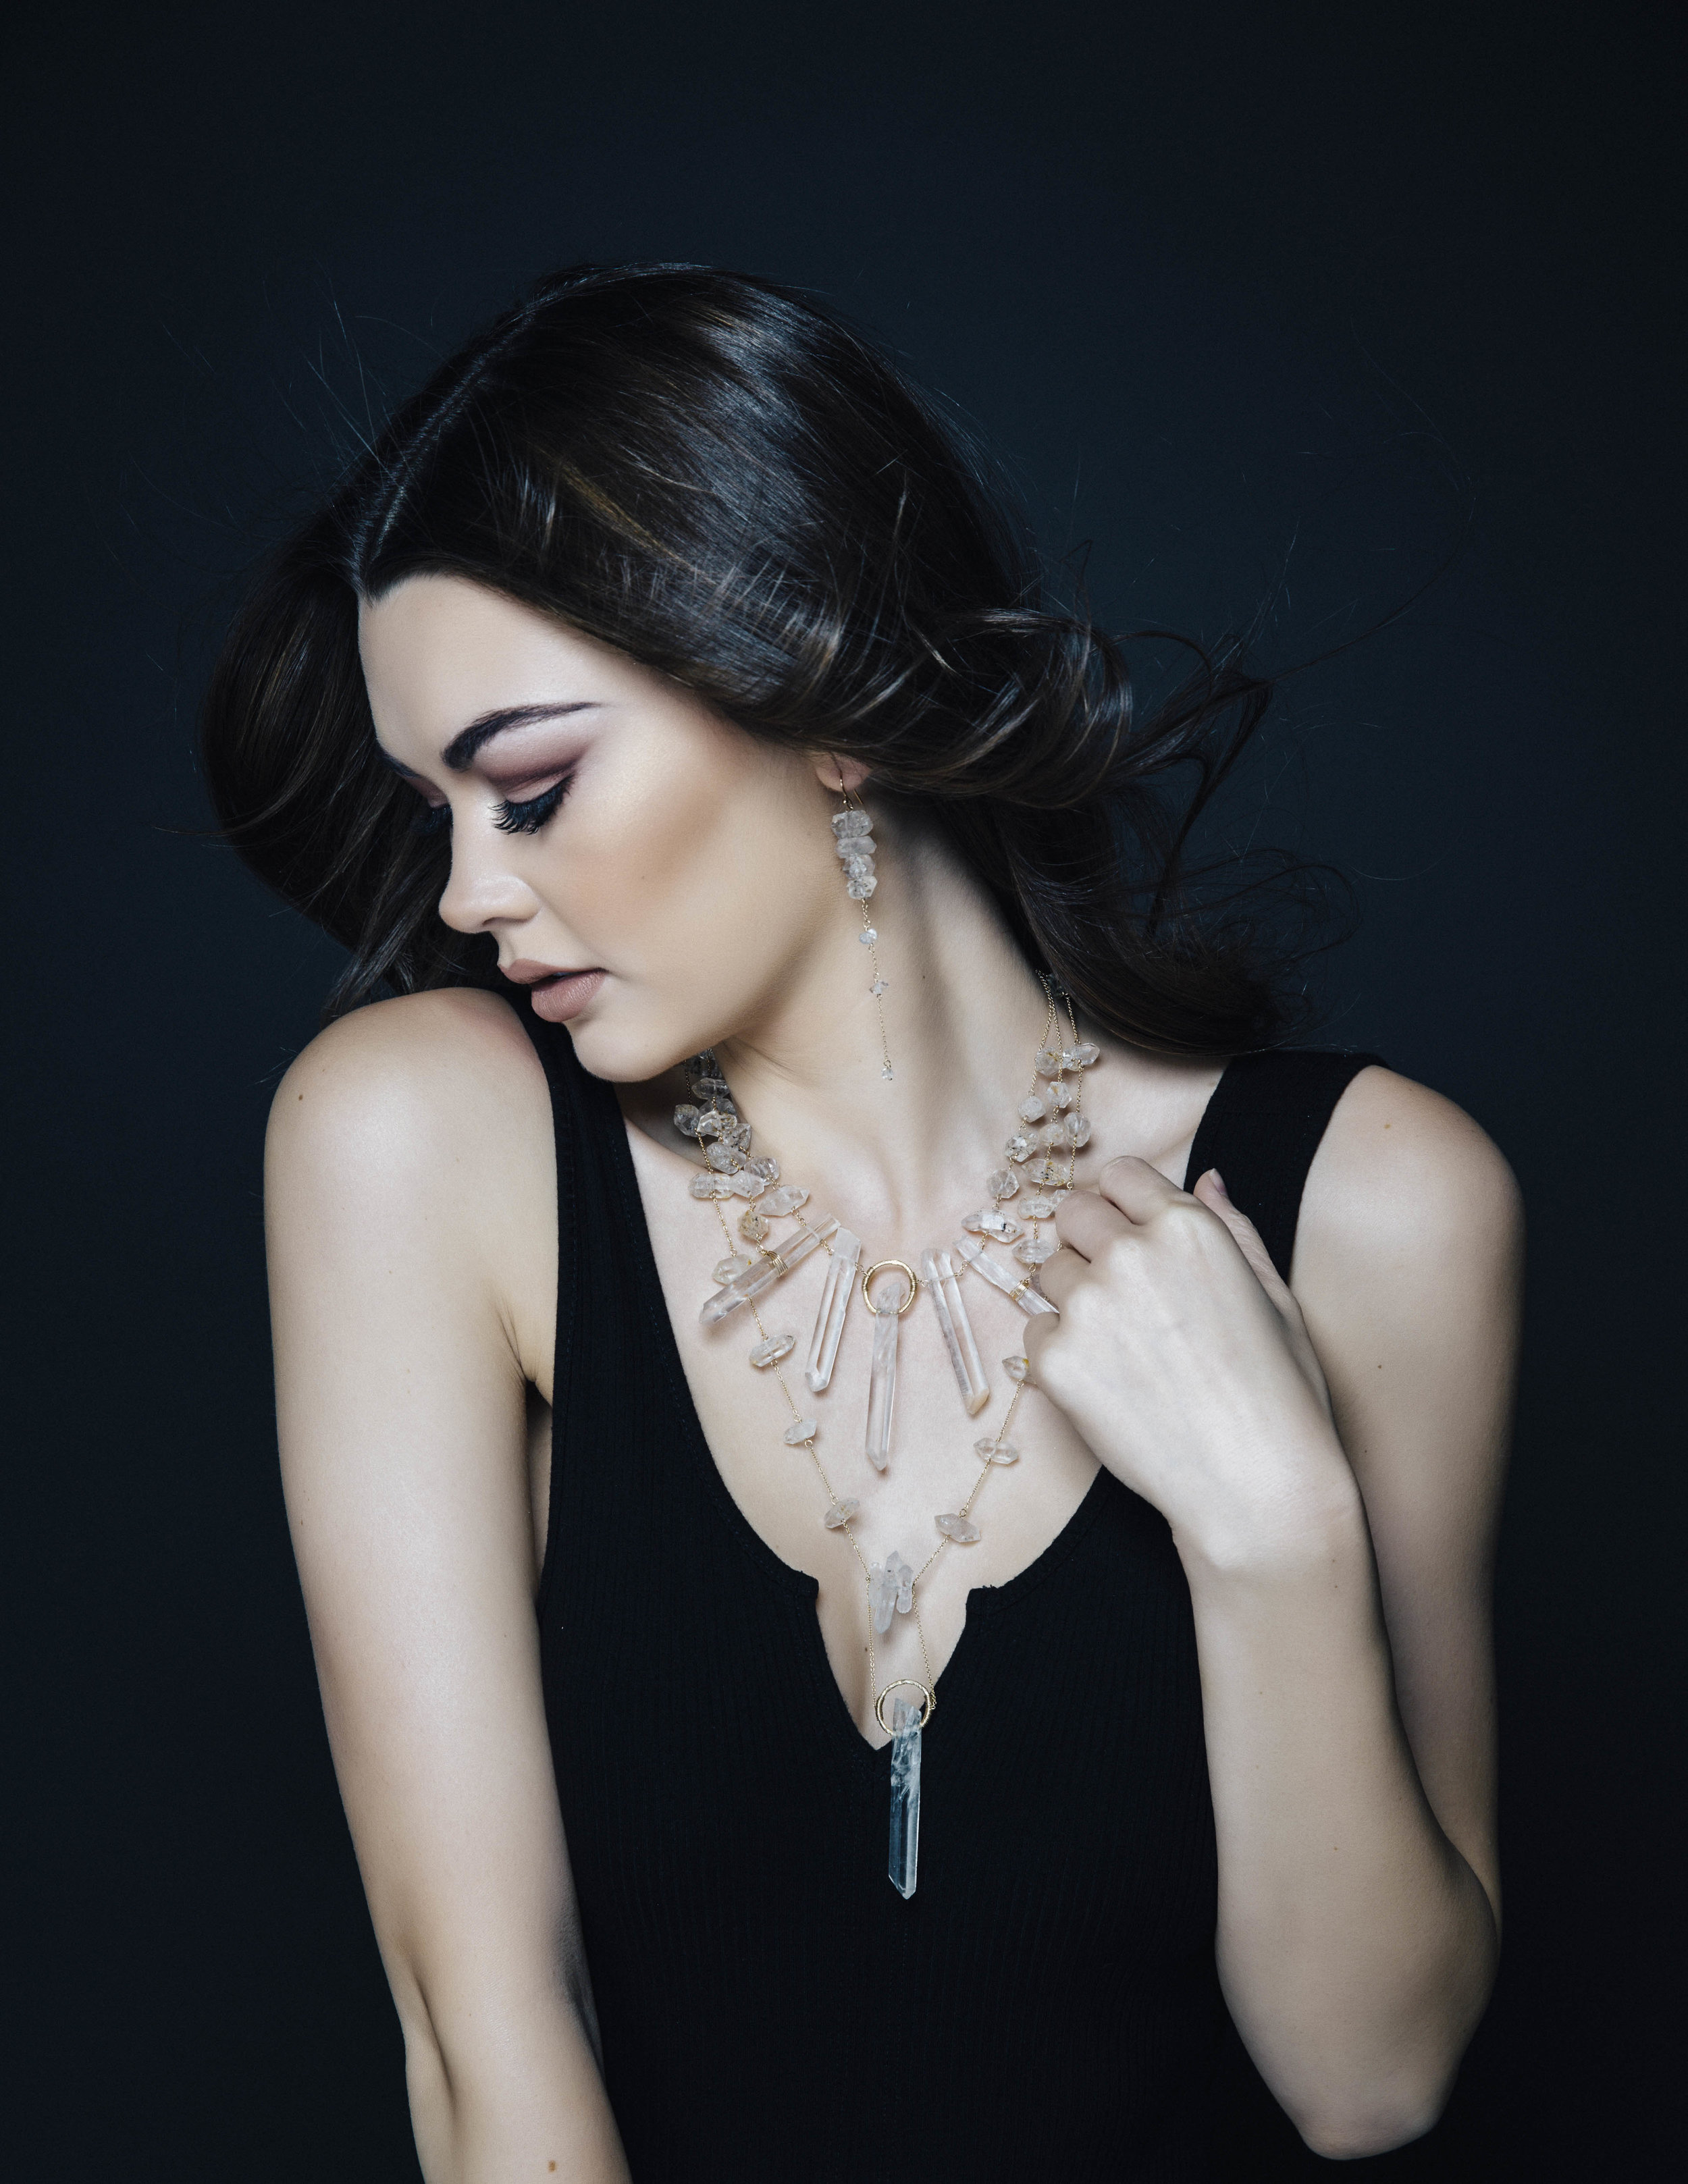 Model wearing a crystal point statement necklace